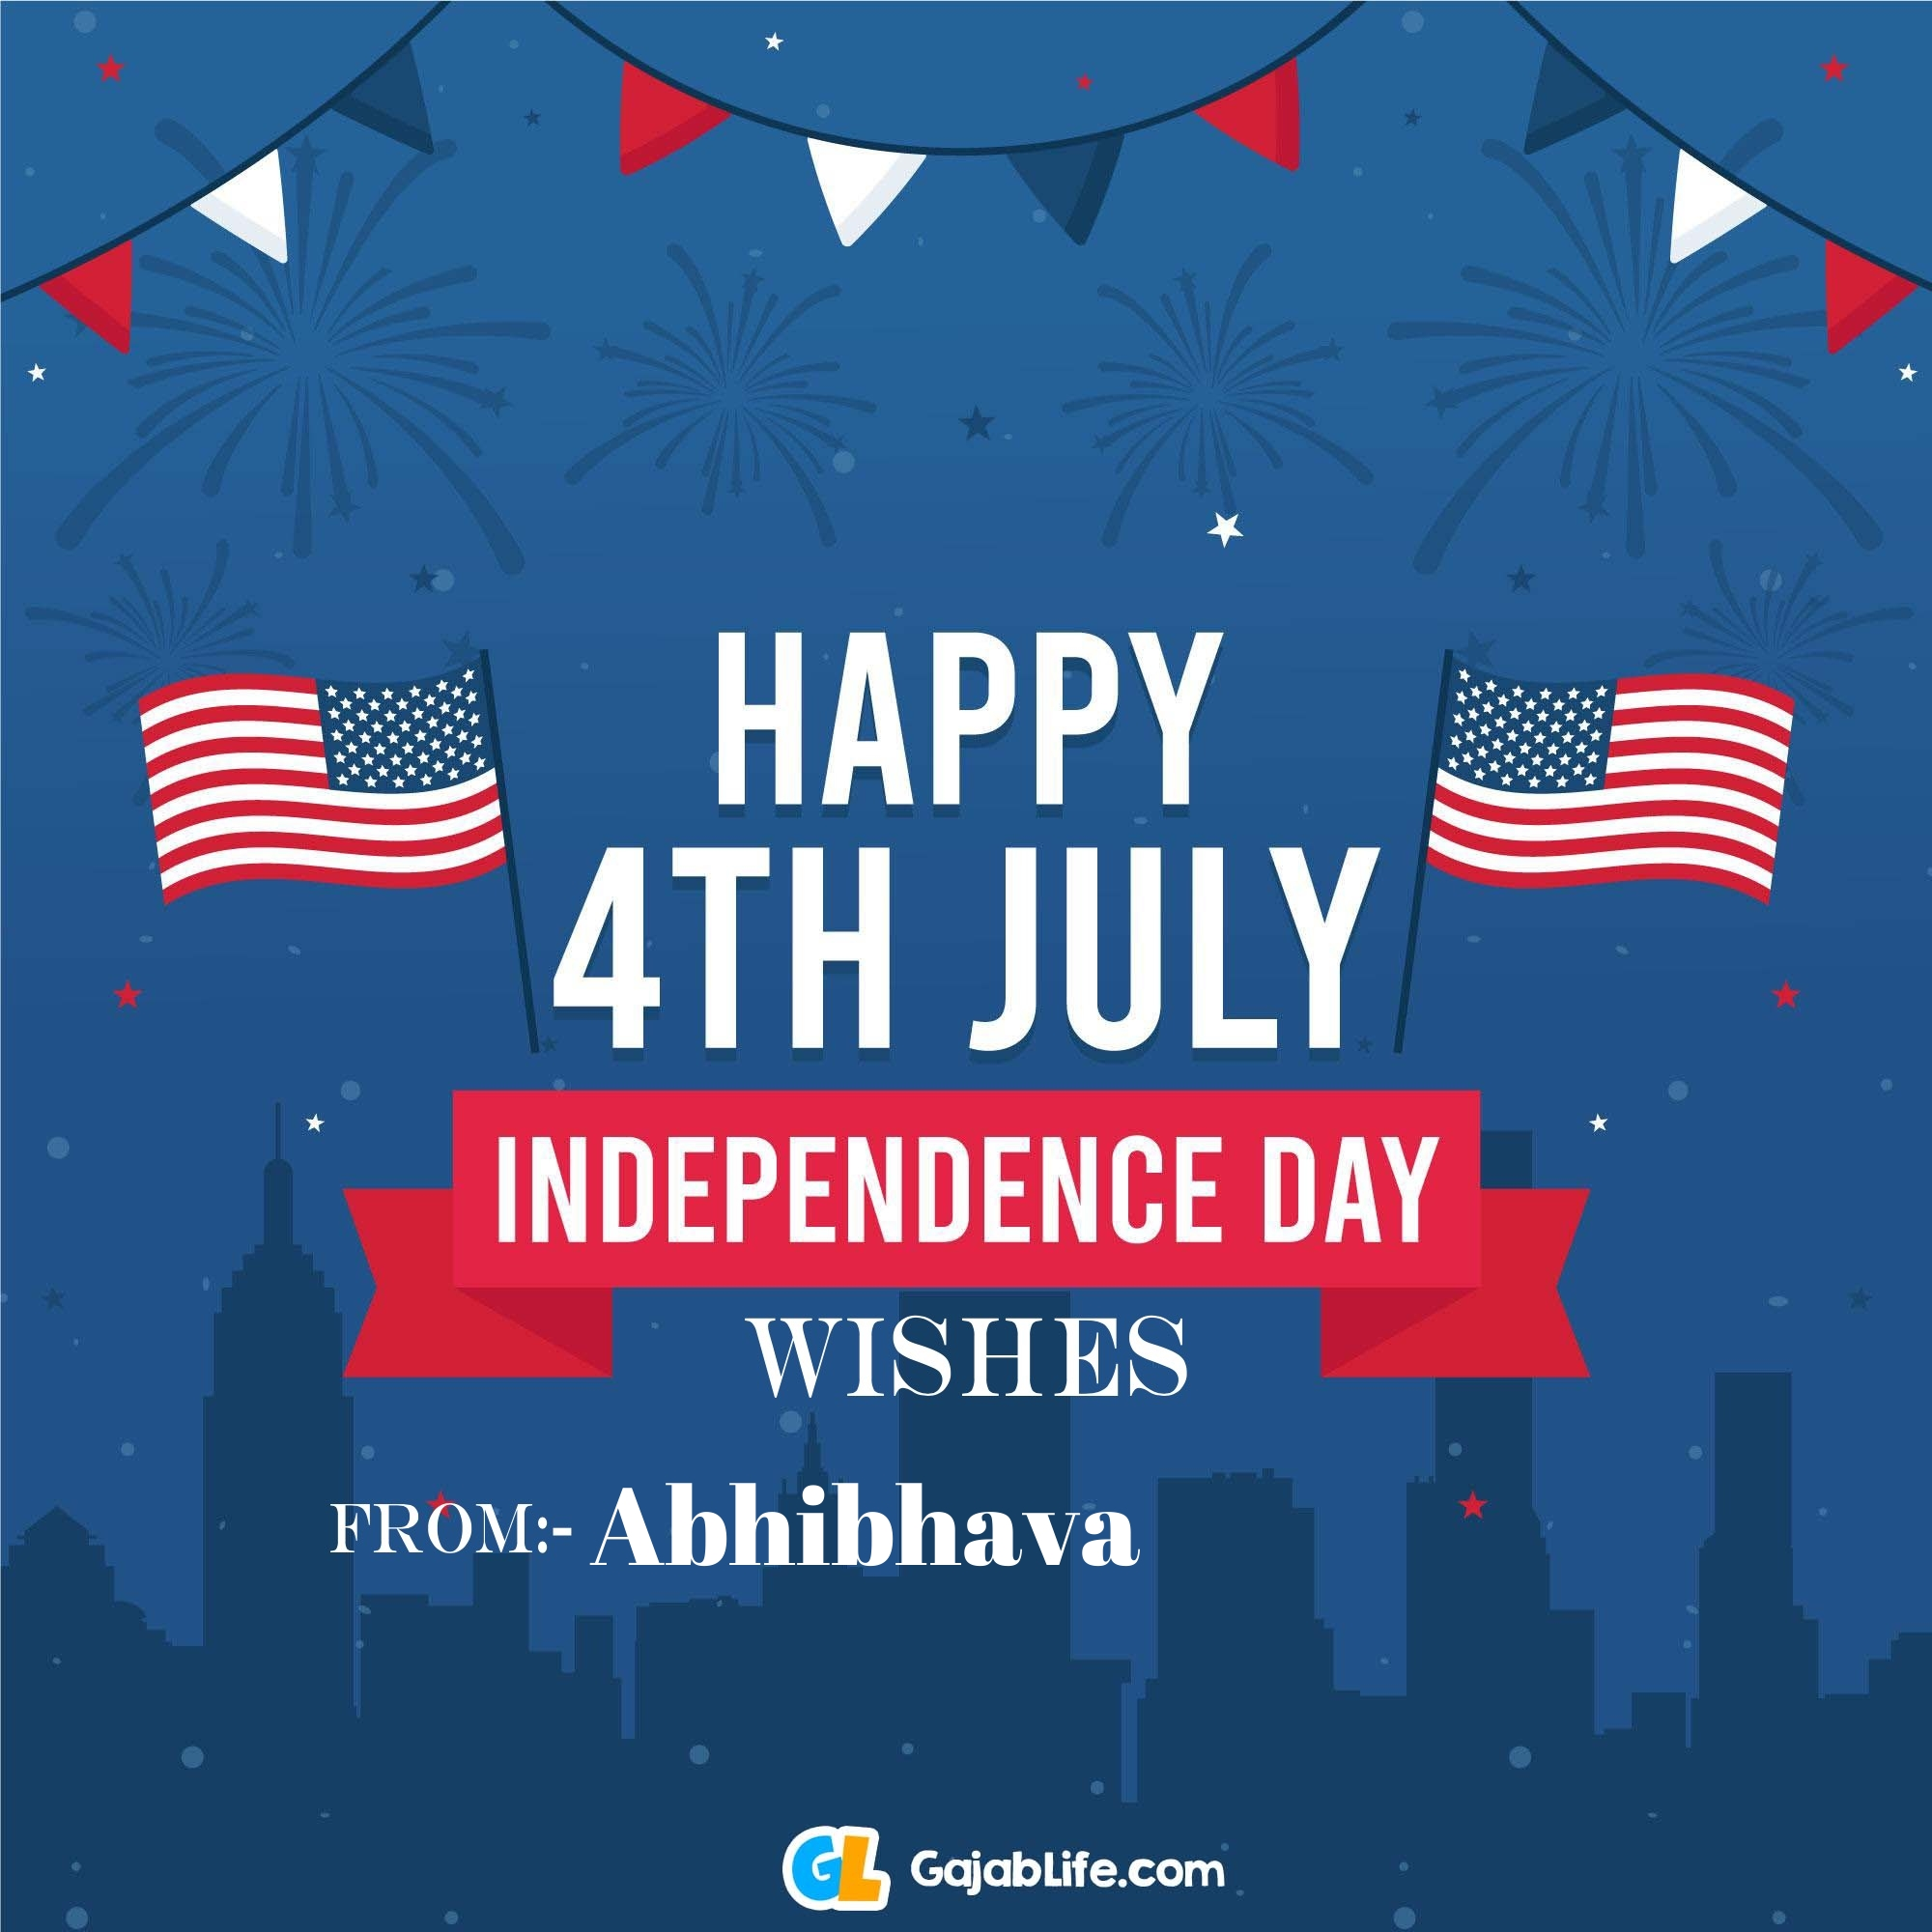 Abhibhava happy independence day united states of america images